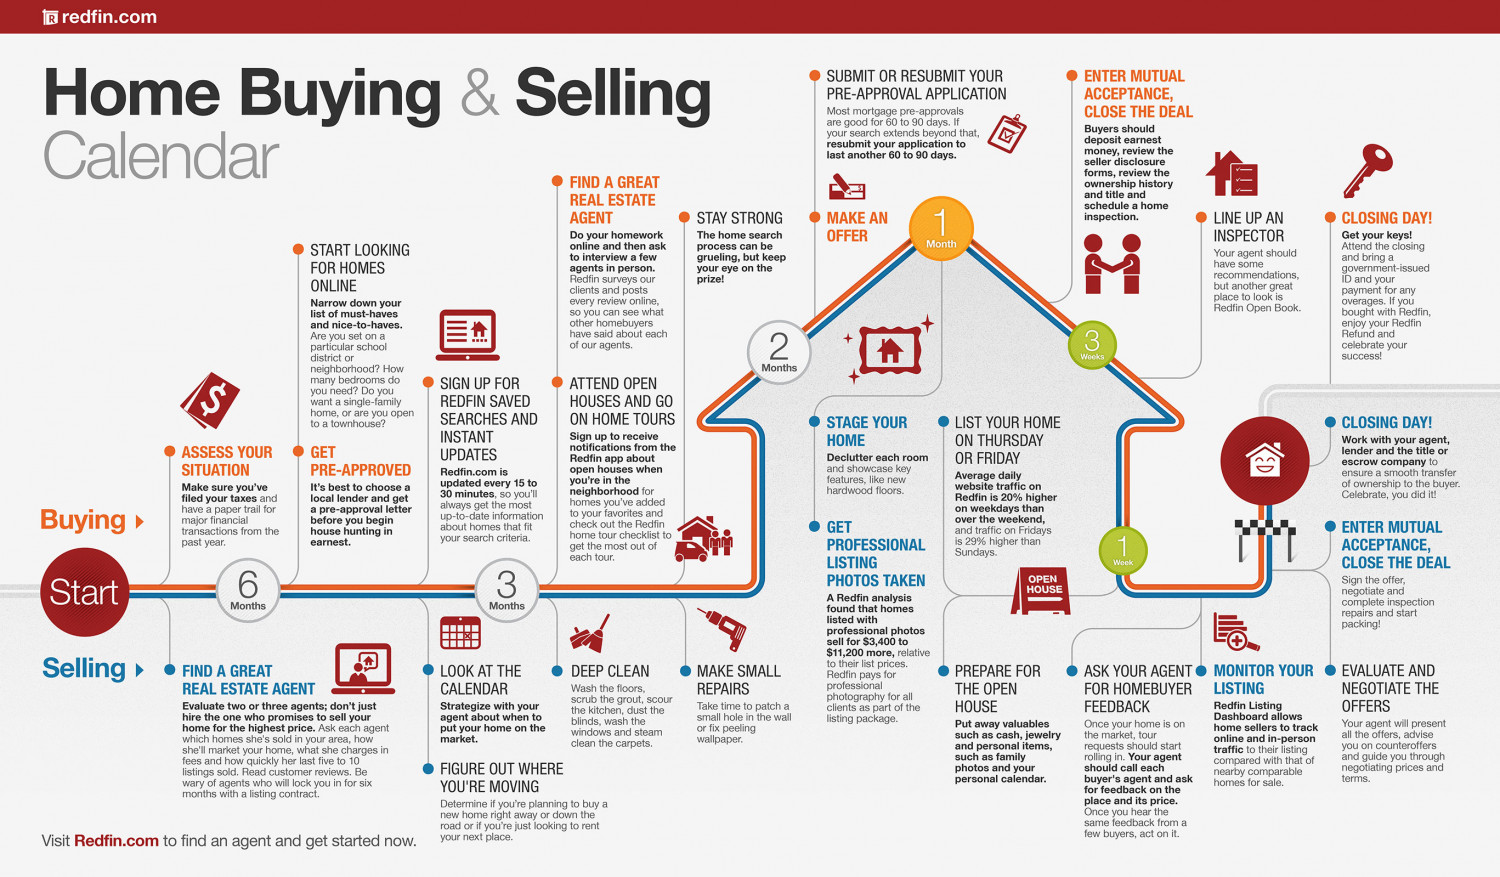 Home Buying and Selling Calendar Infographic